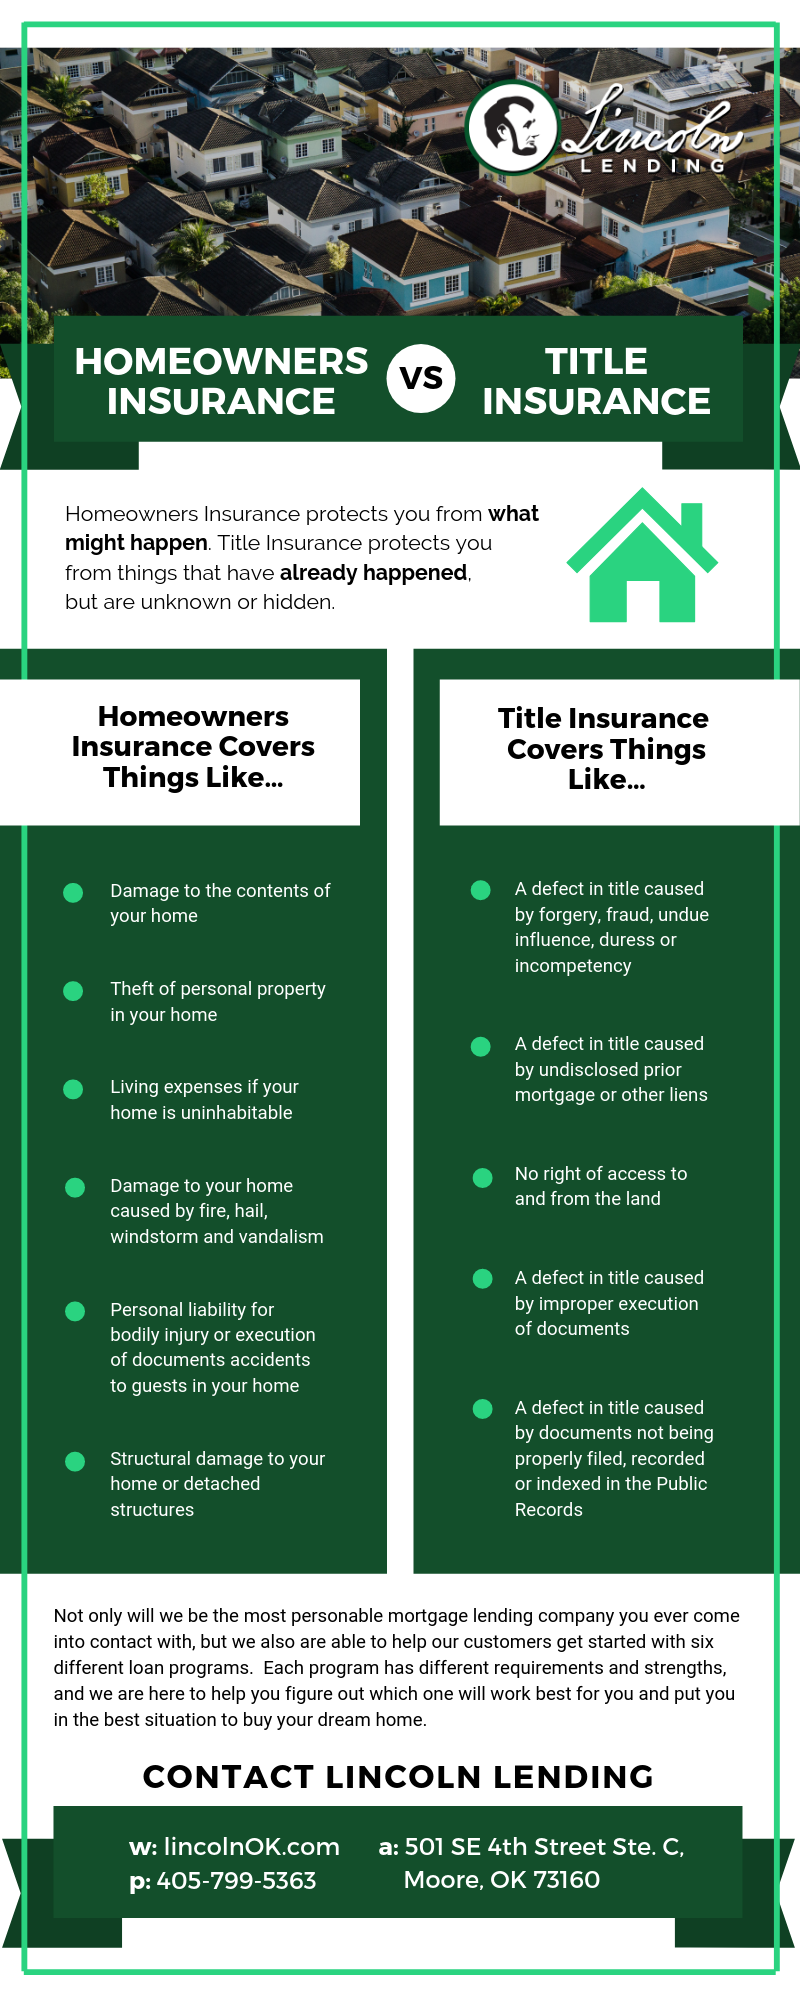 Homeowners Insurance VS Title Insurance.png